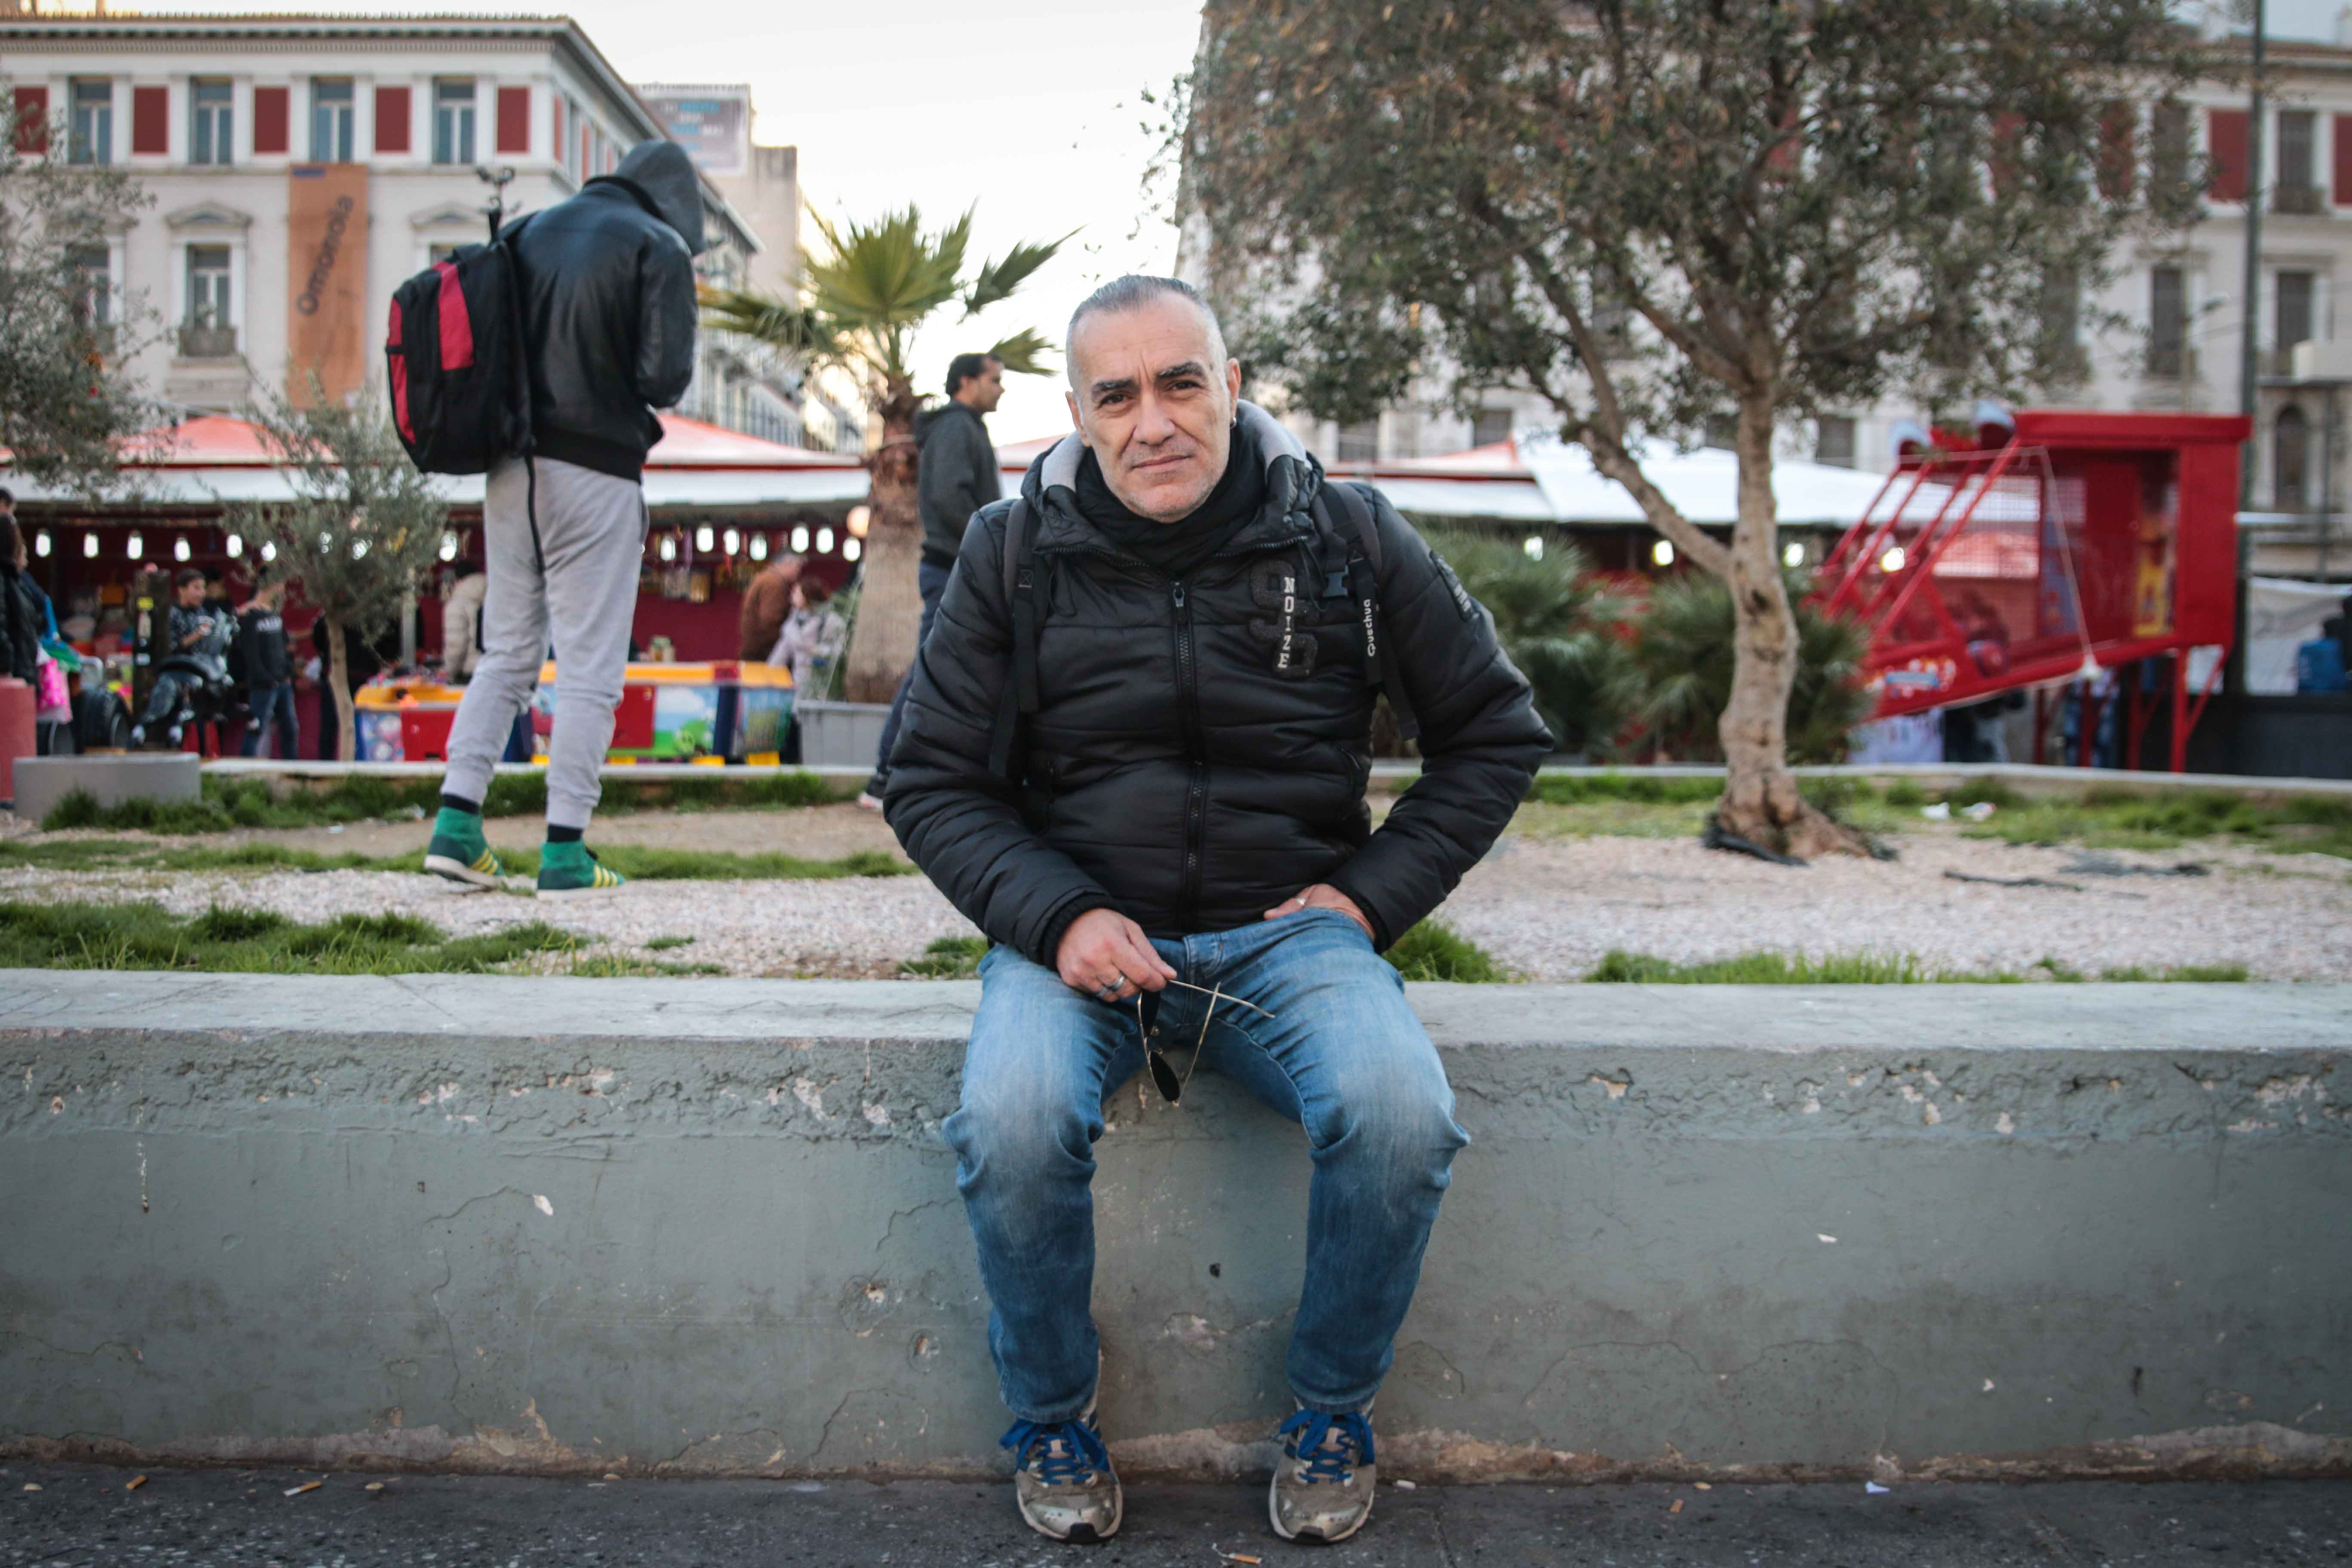 Tassos Smetopoulos, a social worker, is critical of what he sees as the failure of the authorities and NGOs to address the growth of survival sex among refugees and migrants. (Photo: J. Owens for VOA)